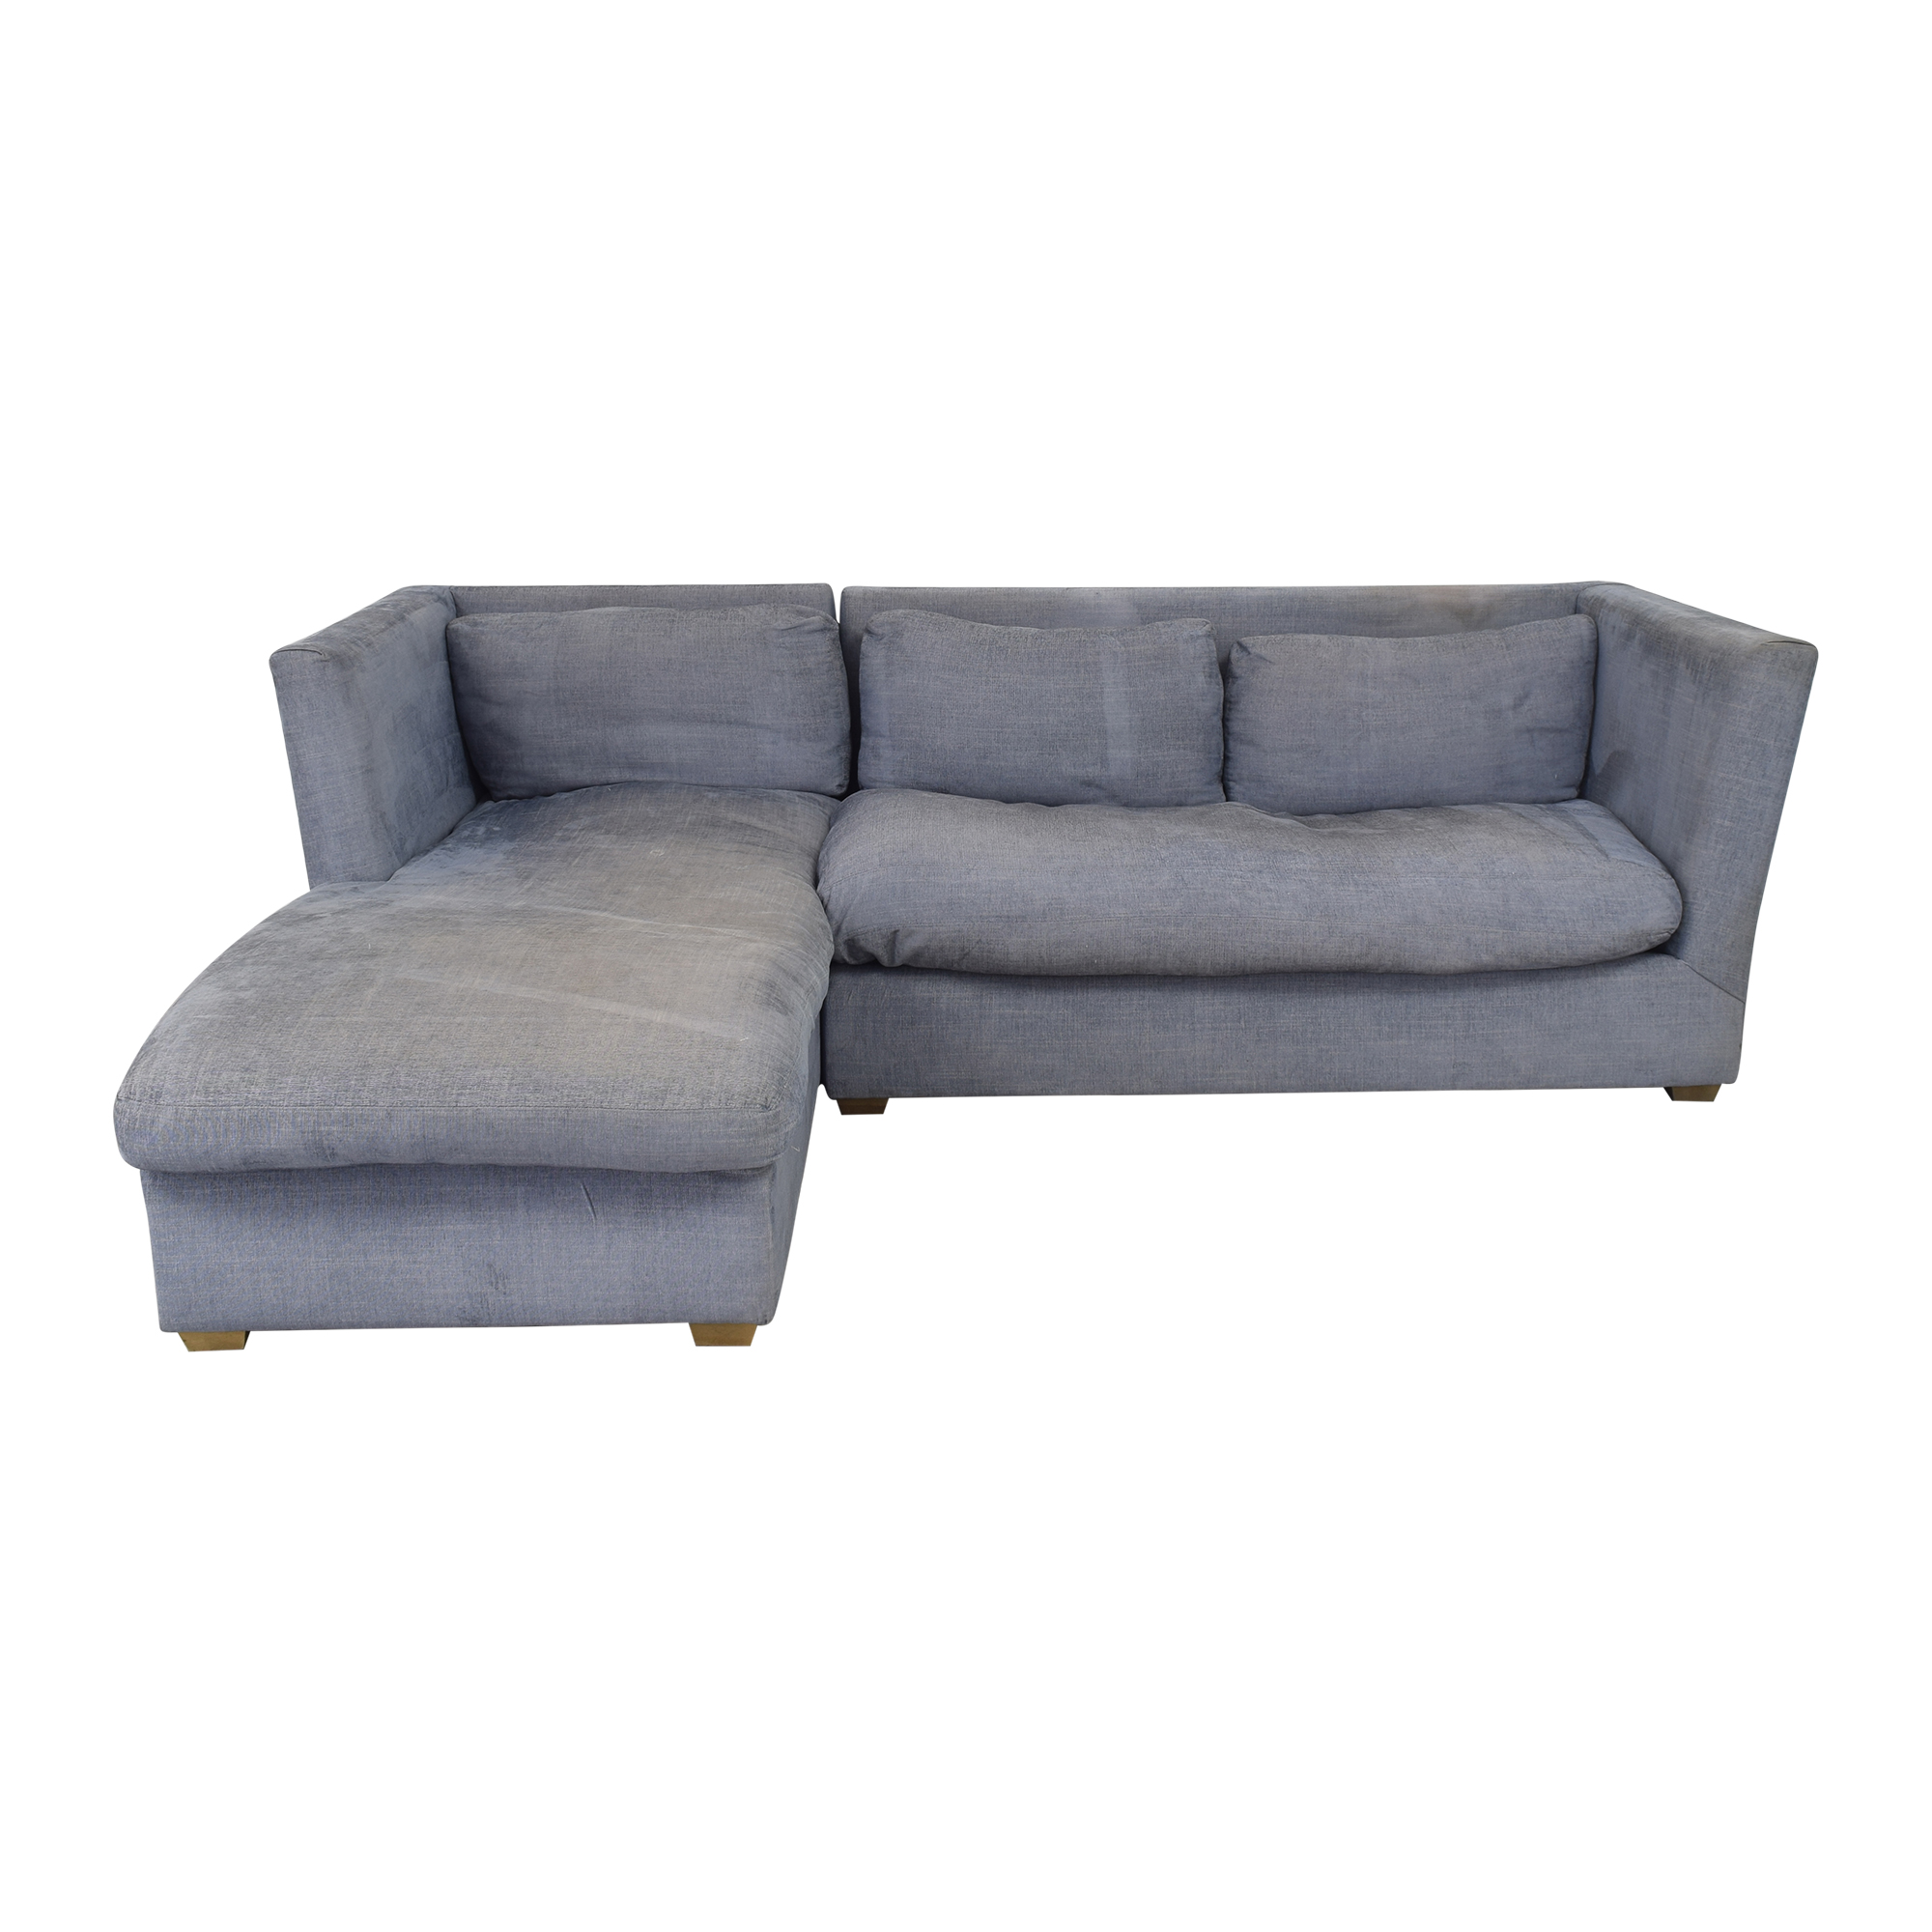 buy Restoration Hardware Chaise Sectional Sofa Restoration Hardware Sofas